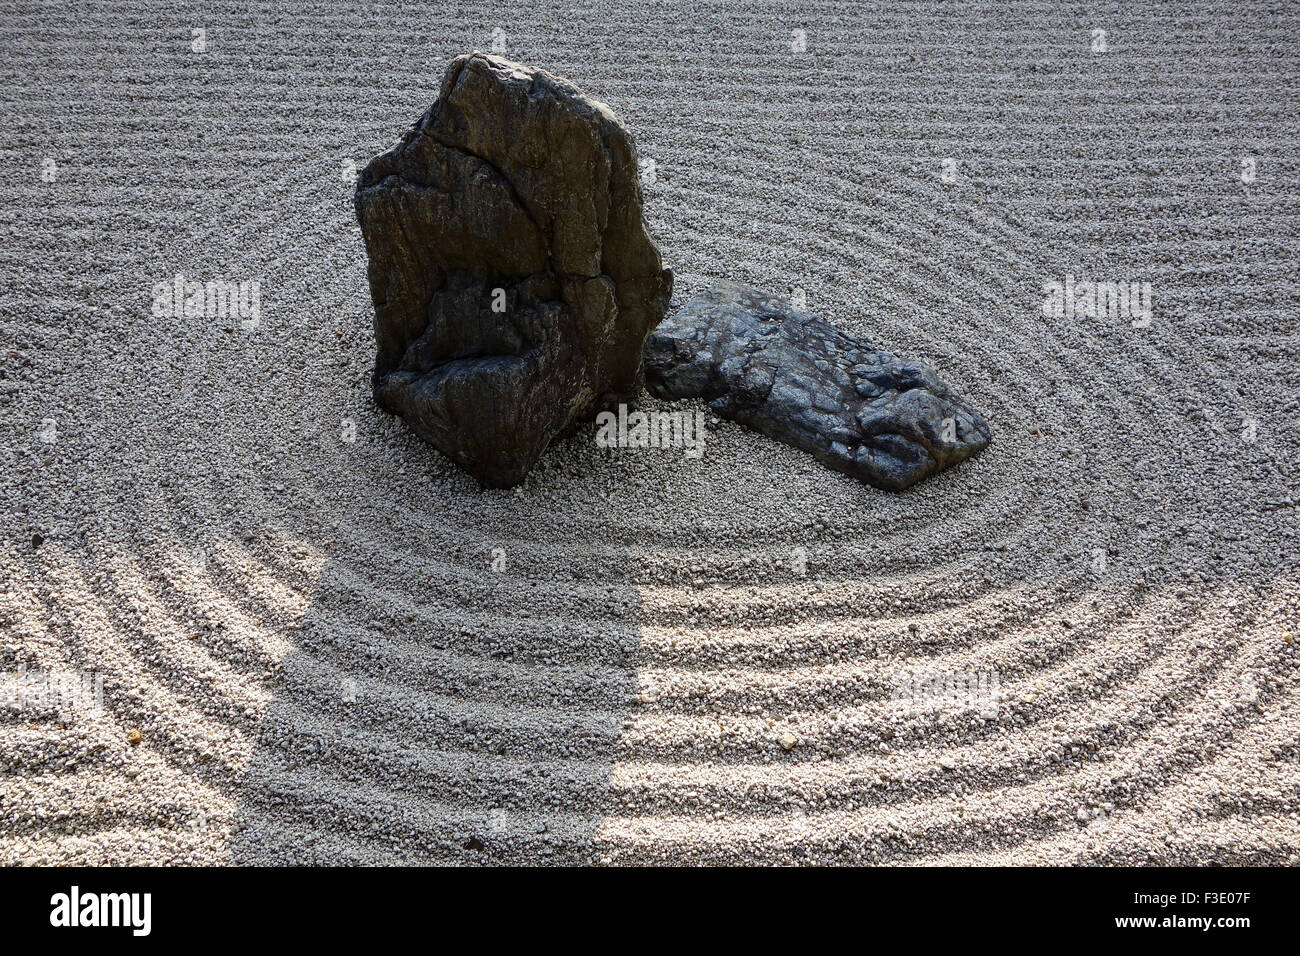 A section of karesansui or dry garden style at the Leaping Tiger Garden in the Nanzen.ji Zen Temple in Kyoto, Japan. - Stock Image